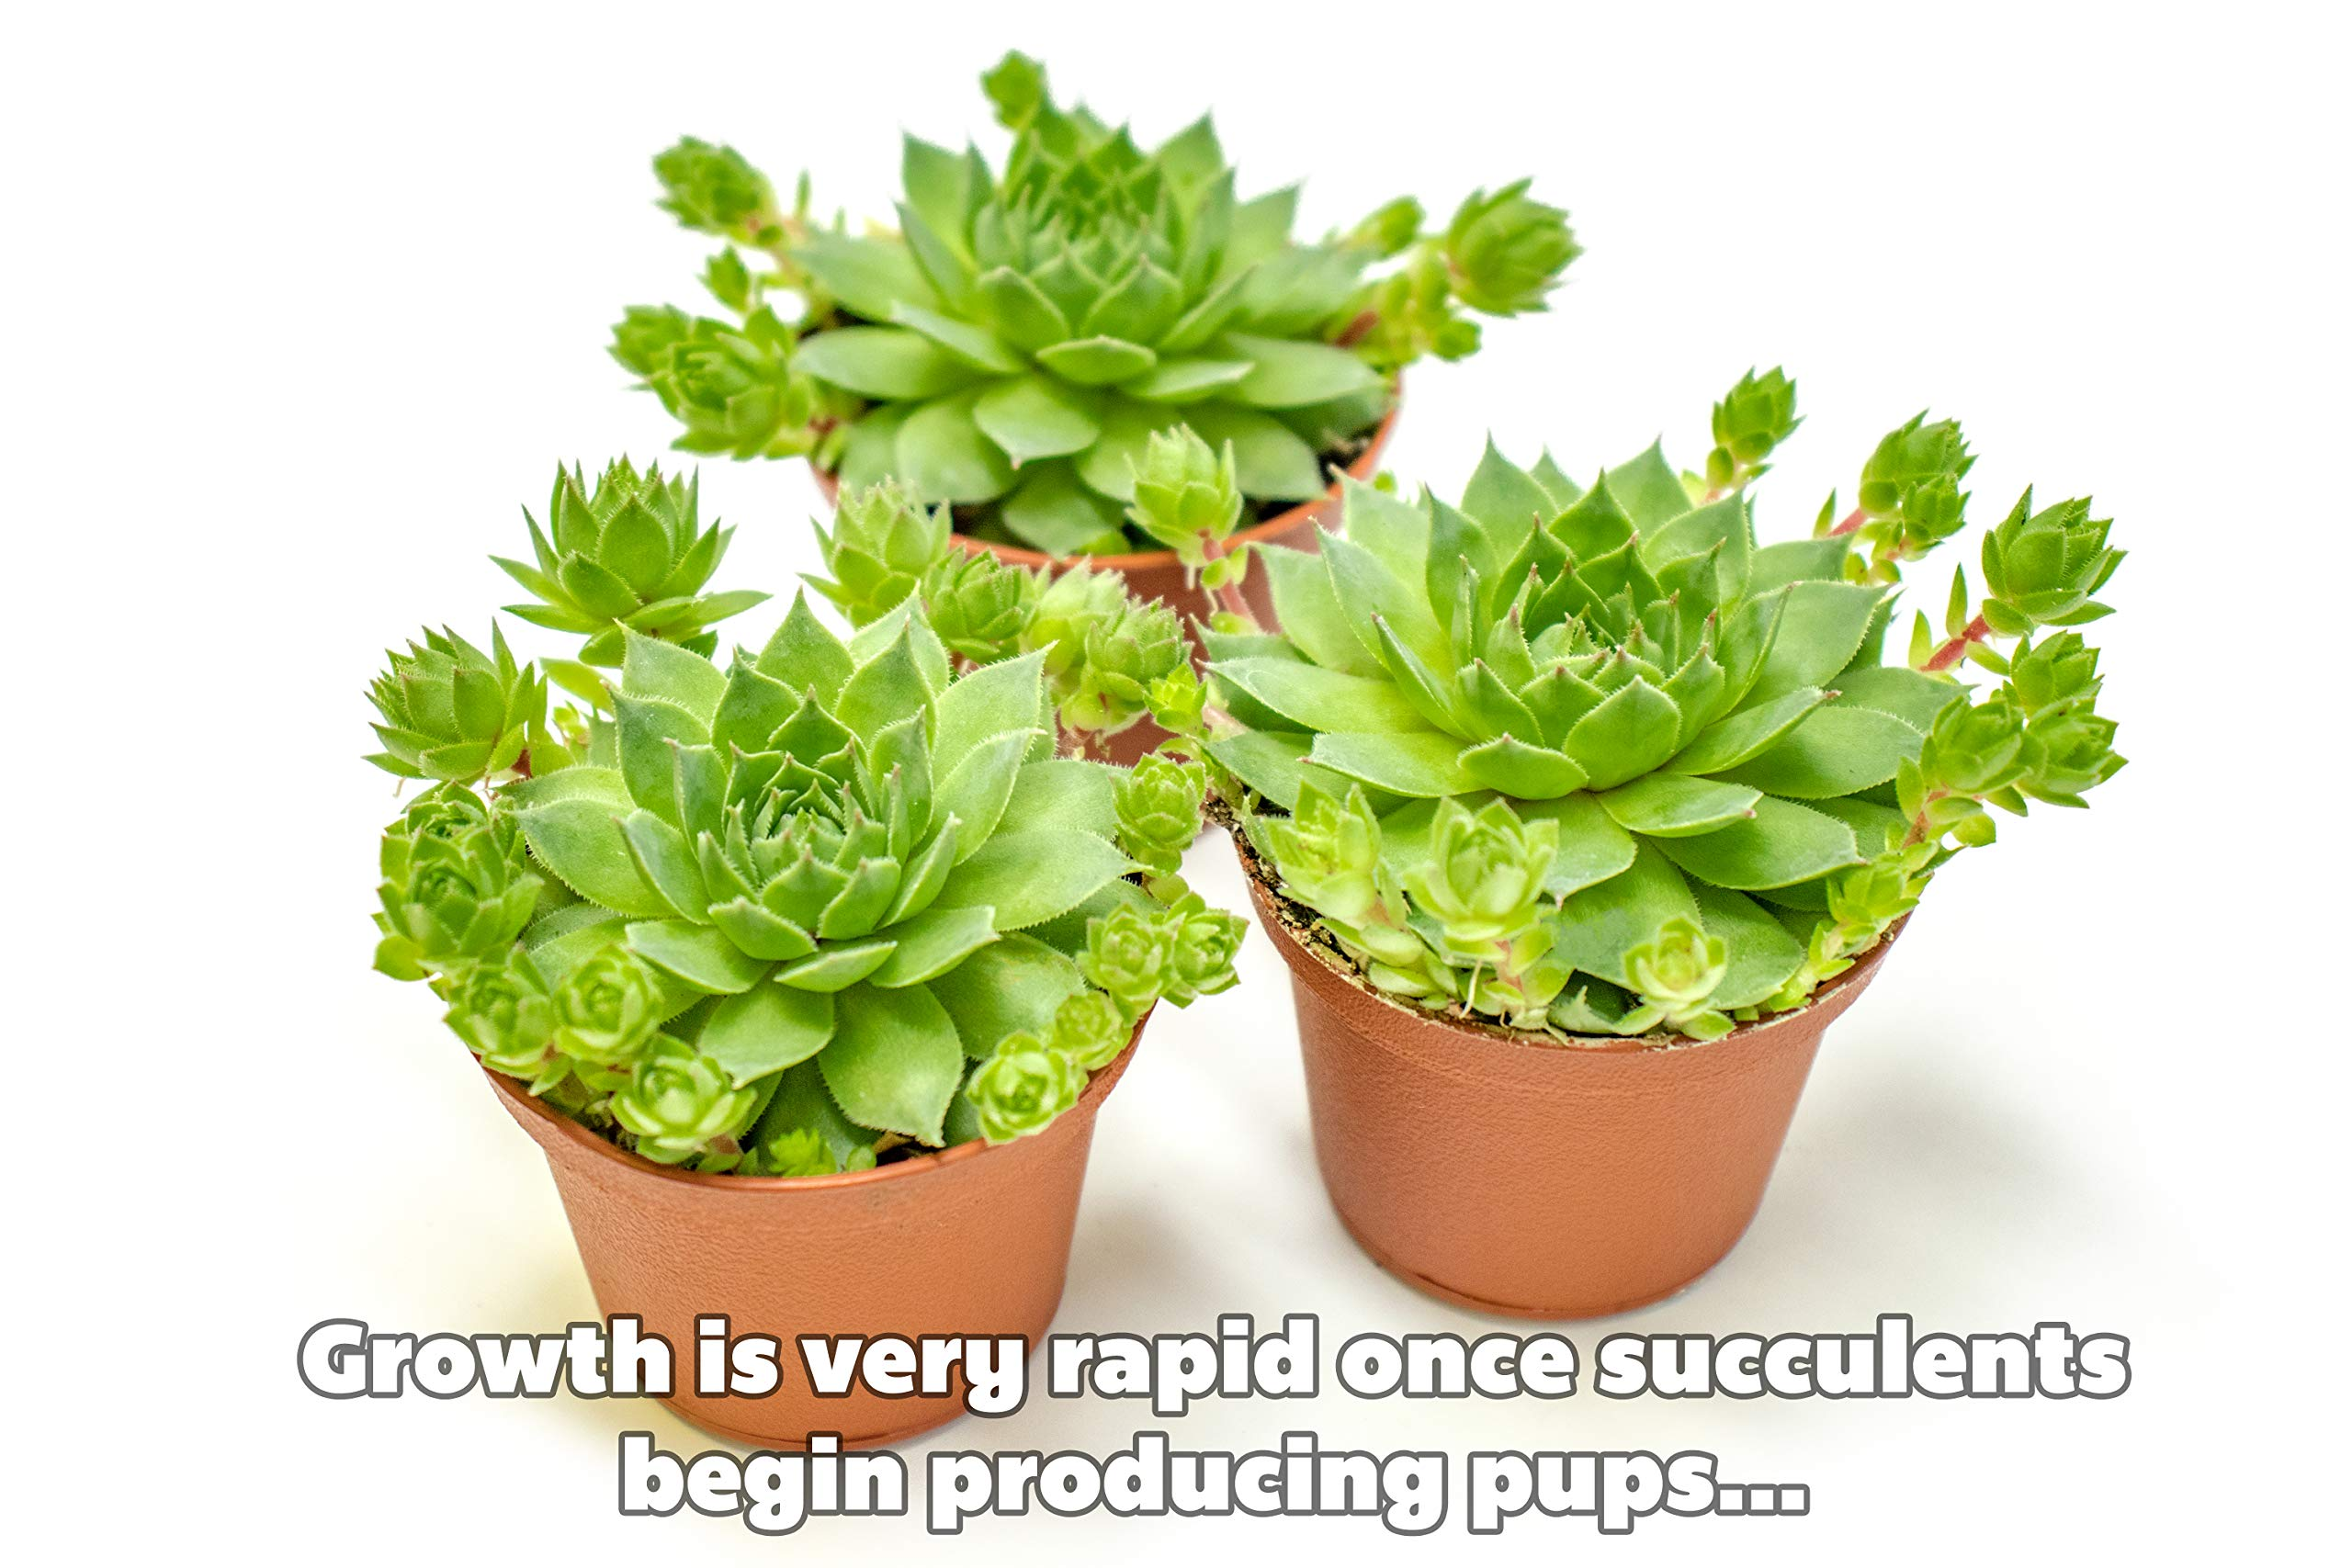 Fractal Succulents(5 Pack) Live Sempervivum Houseleek SucculentRooted in Pots | Flowering Plant Leaves /Geometric Rosettes by Plants for Pets by Plants for Pets (Image #5)